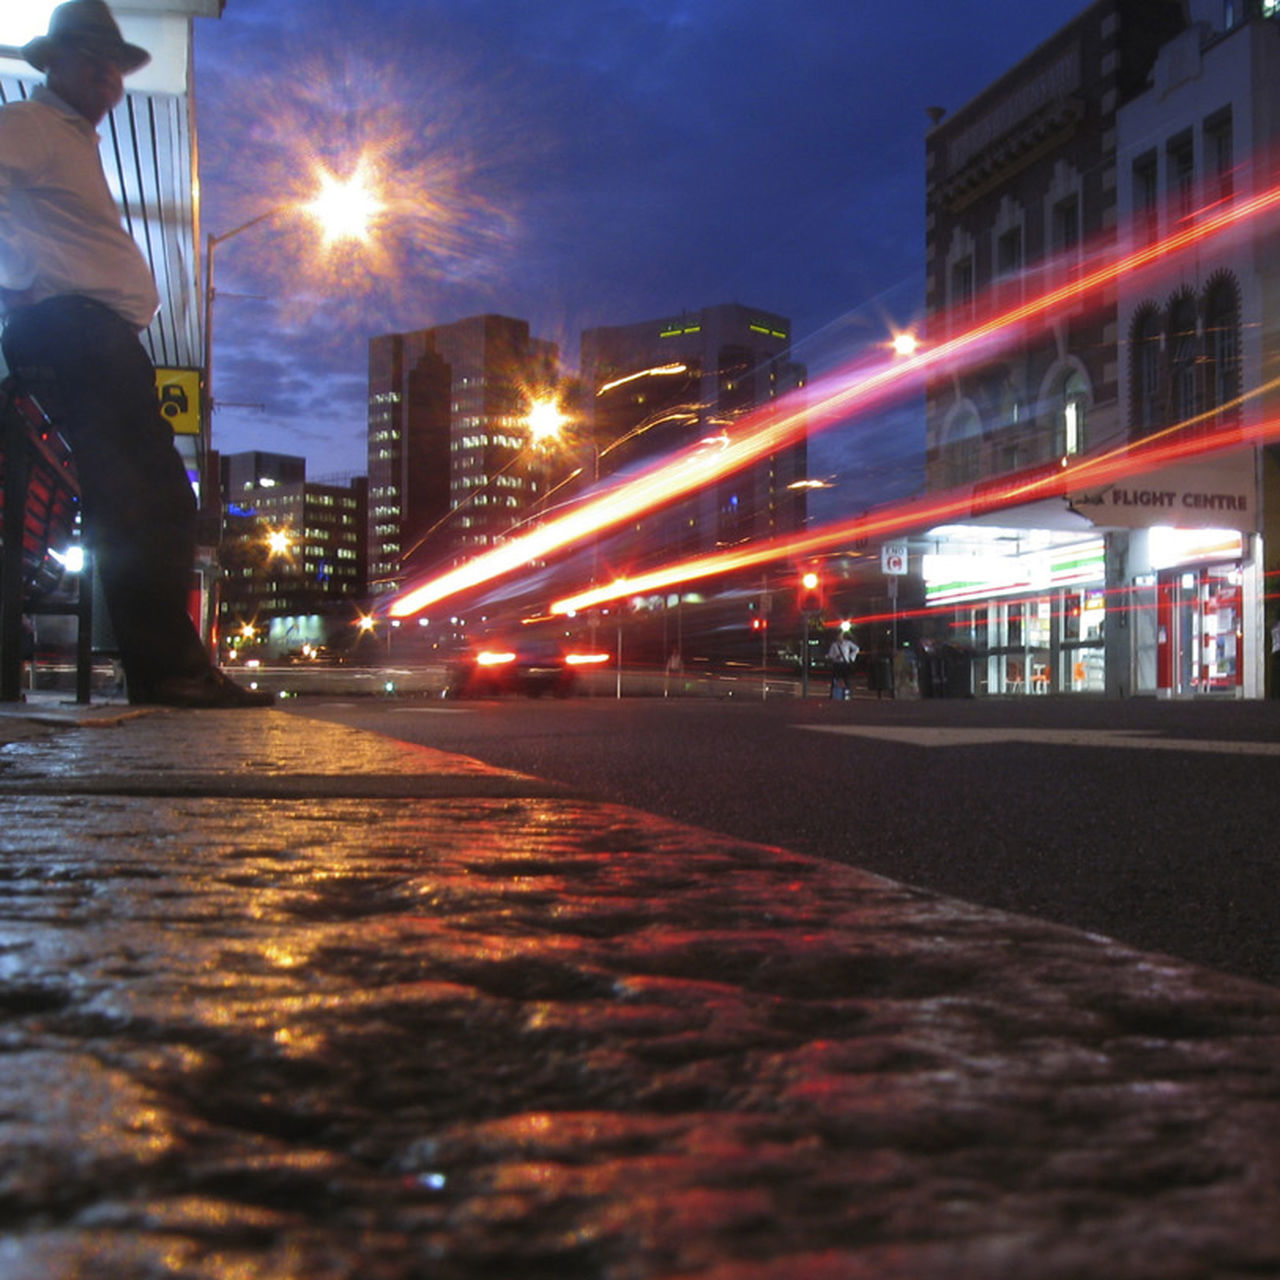 illuminated, night, long exposure, motion, speed, blurred motion, street, architecture, outdoors, real people, building exterior, road, transportation, built structure, one person, sky, men, city, people